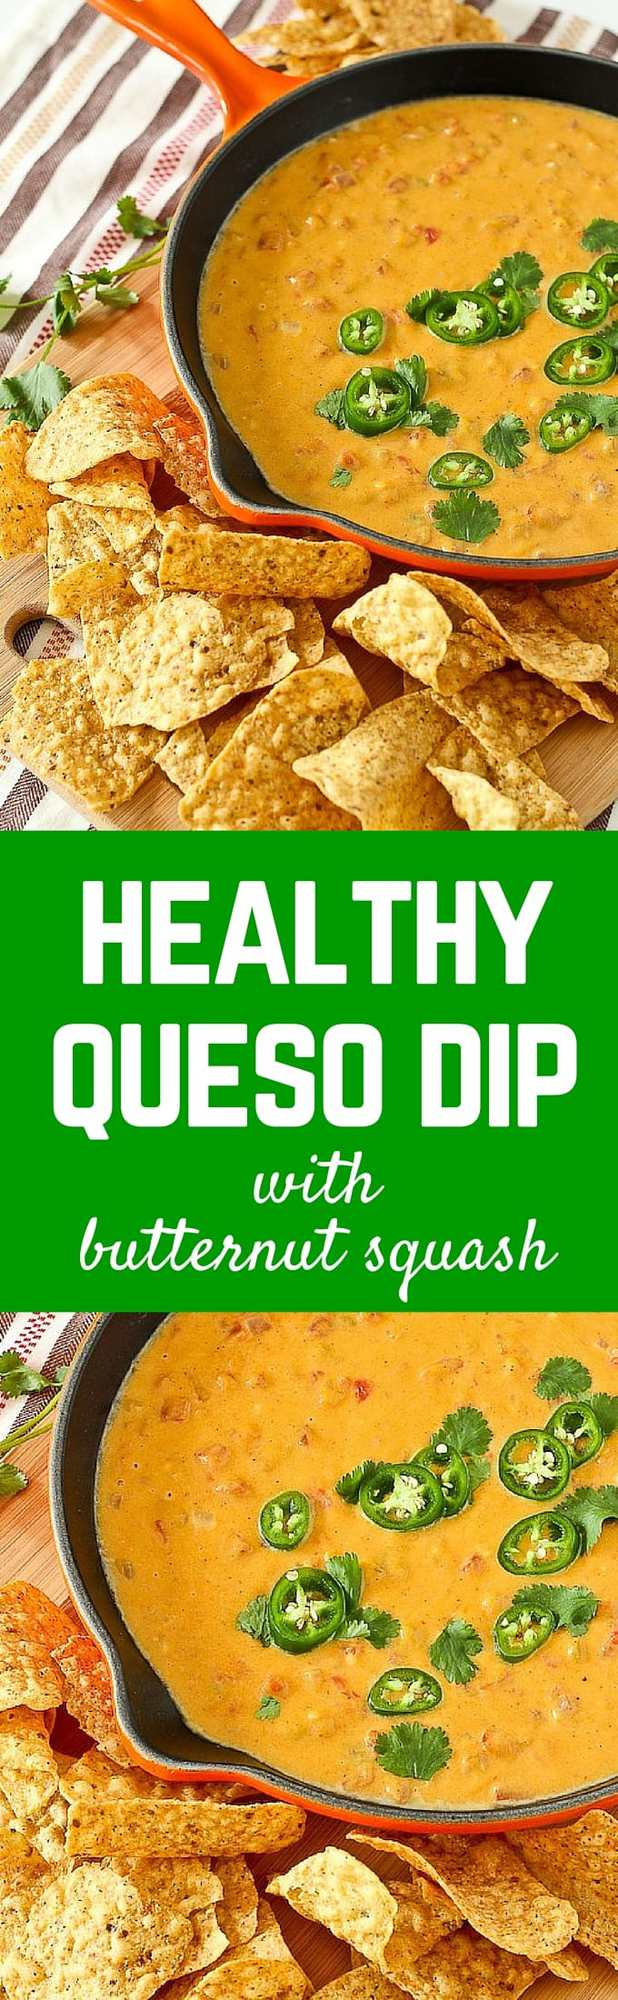 This healthy queso dip is about as healthy as you'll get when it comes to a decadent, cheesy dip. You'll love the subtle sweetness and vibrant color that the butternut squash adds. This one is a must-try! Get the appetizer recipe on RachelCooks.com!